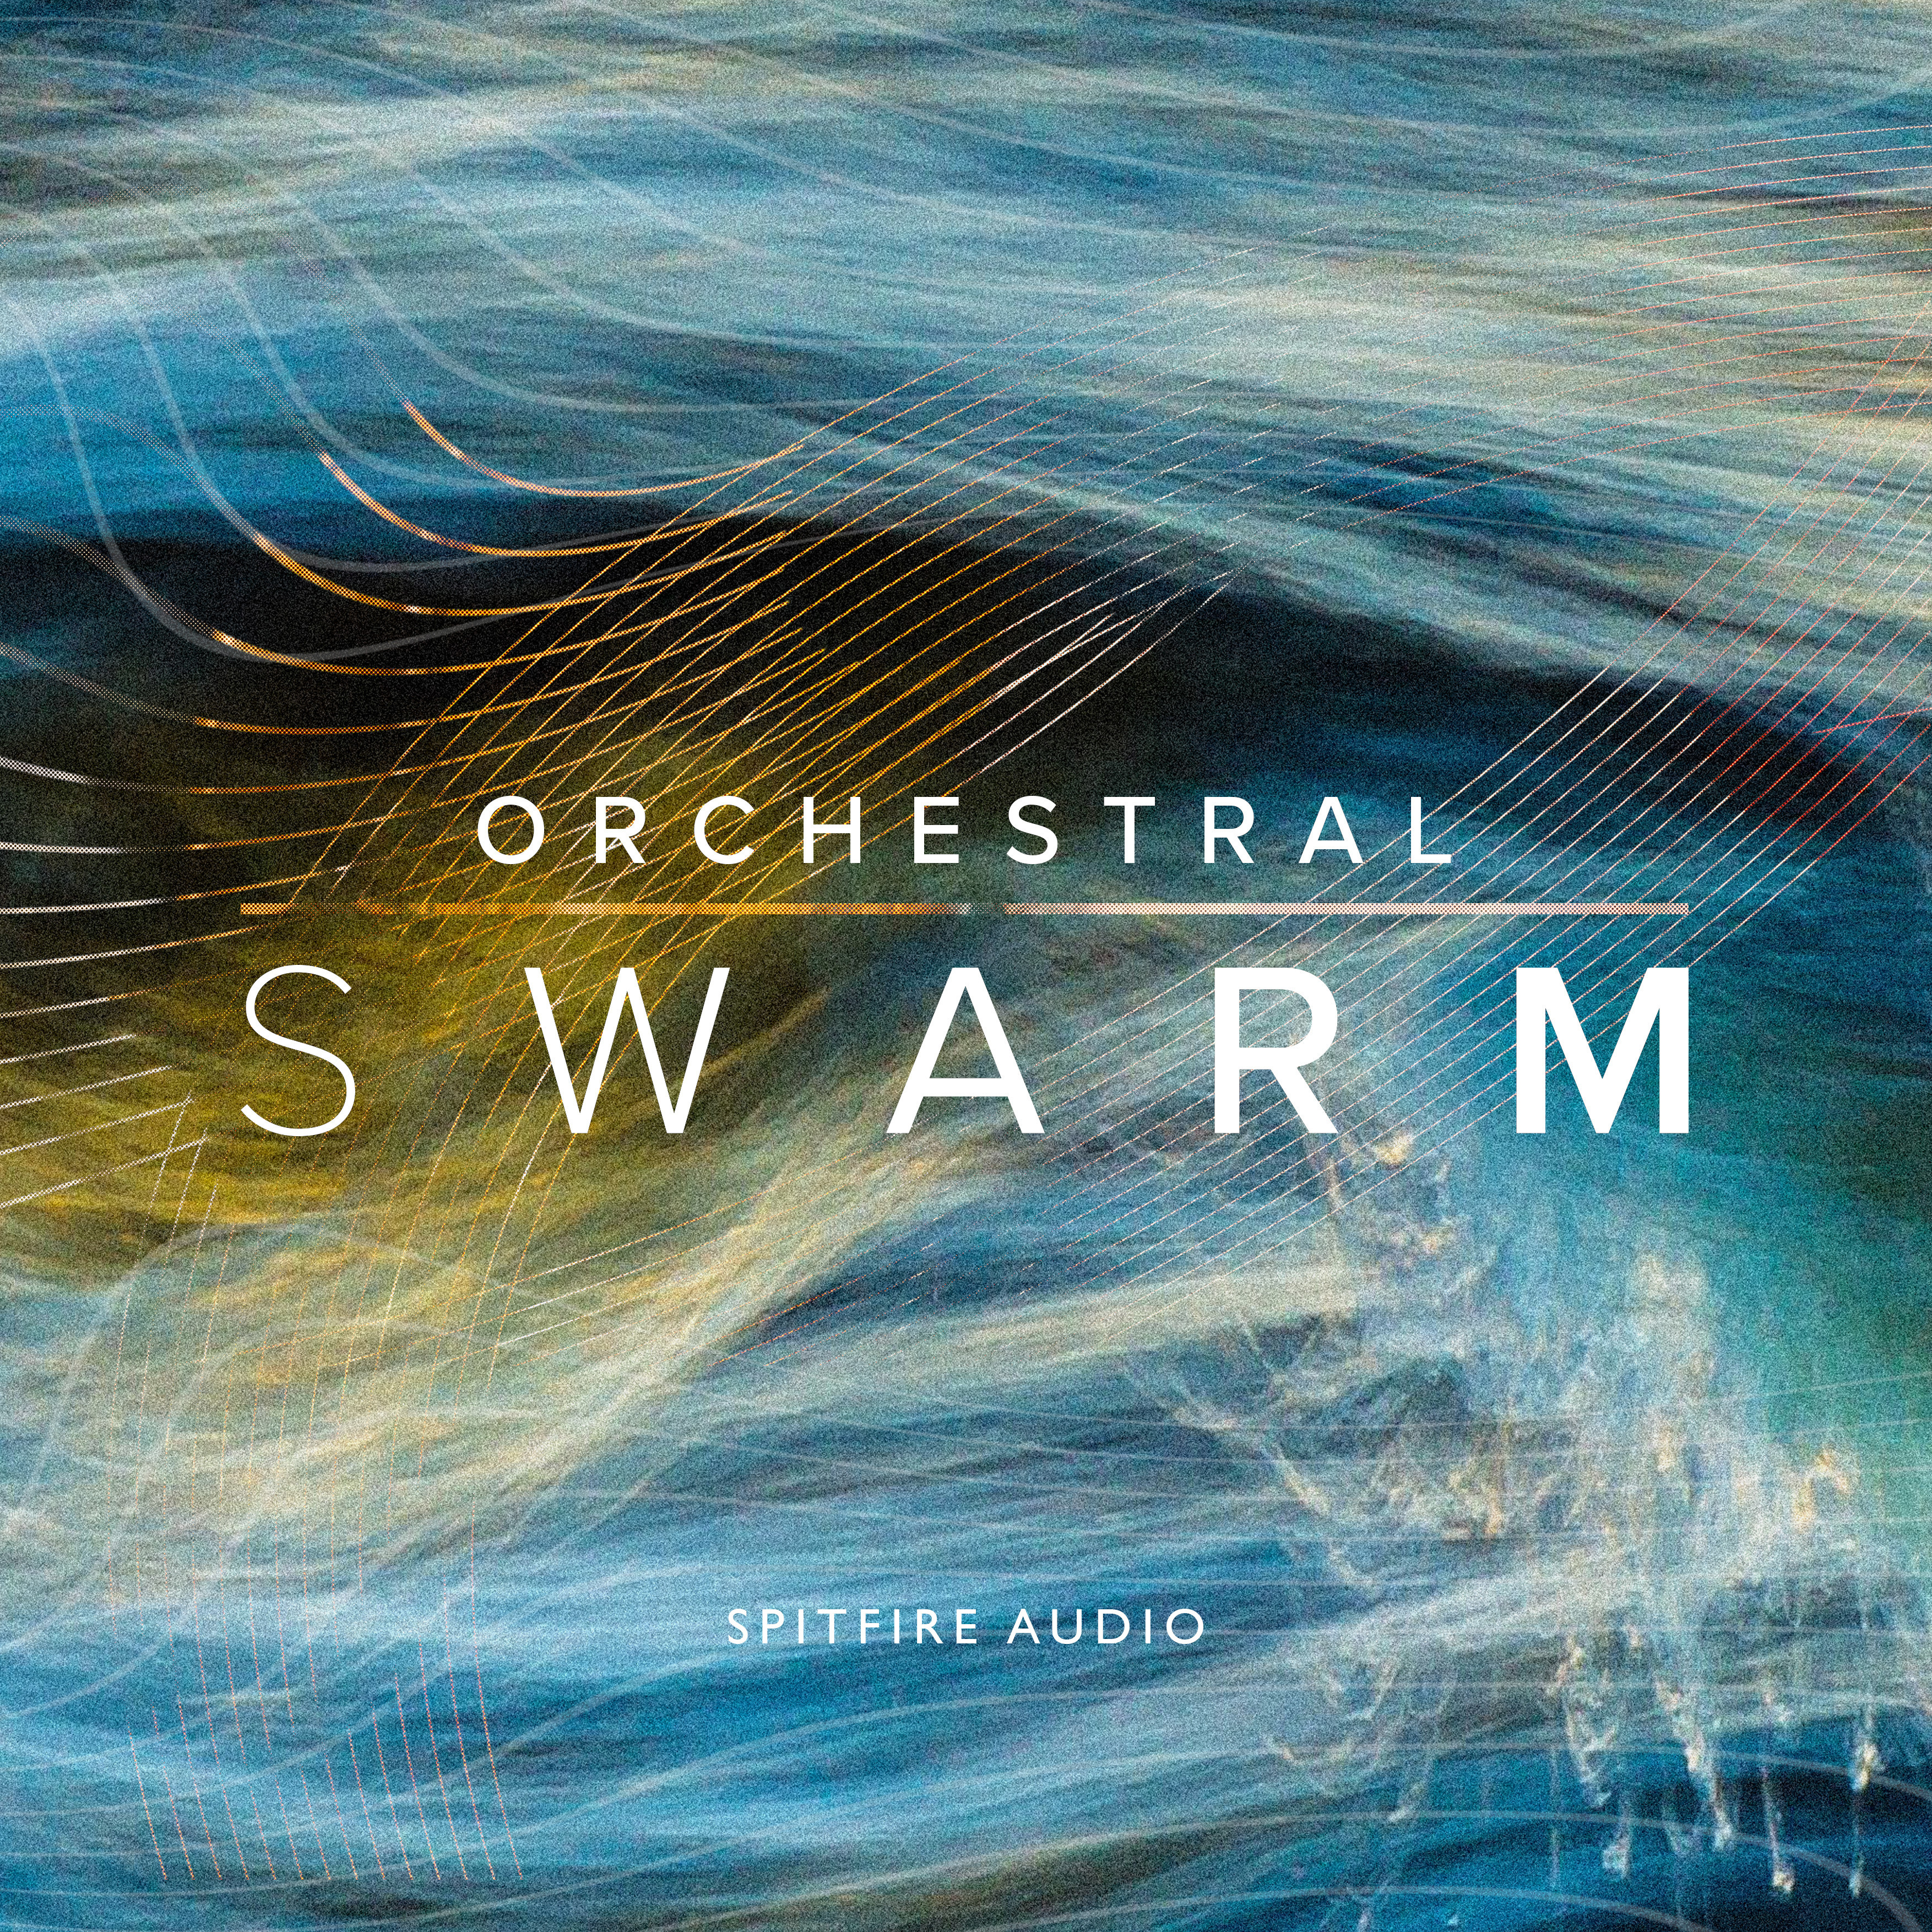 Orchestral Swarm by Spitfire Audio Review | StrongMocha